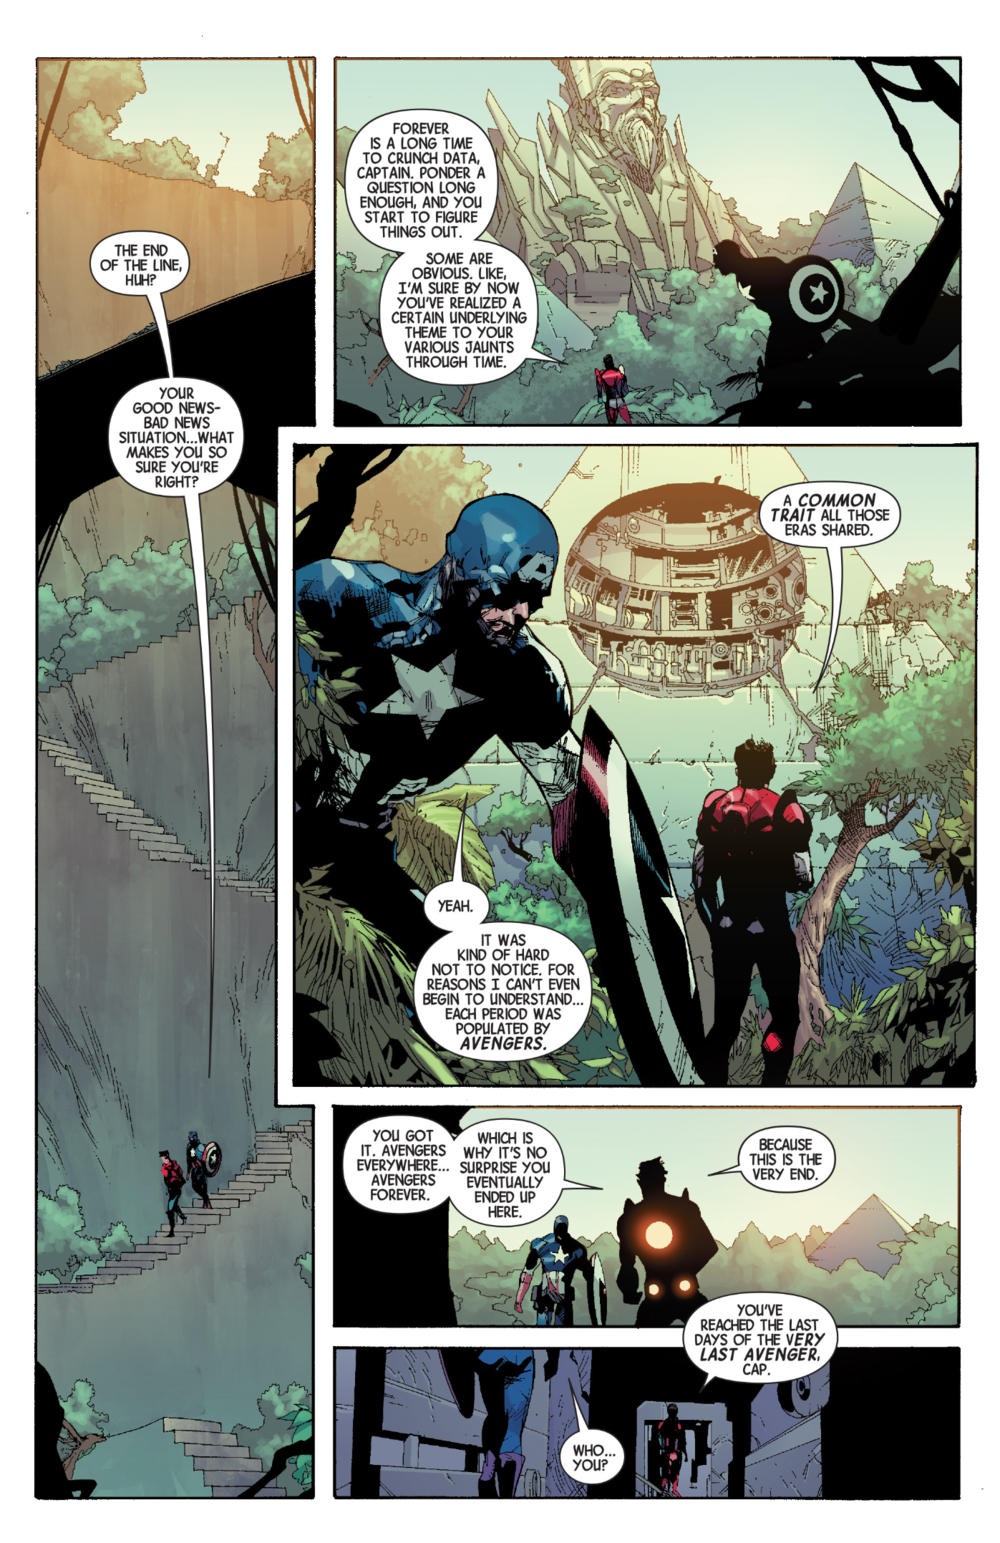 Avengers #34, art by Leinil Yu, Gerry Alanguilan, Sunny Gho, and Matt Milla